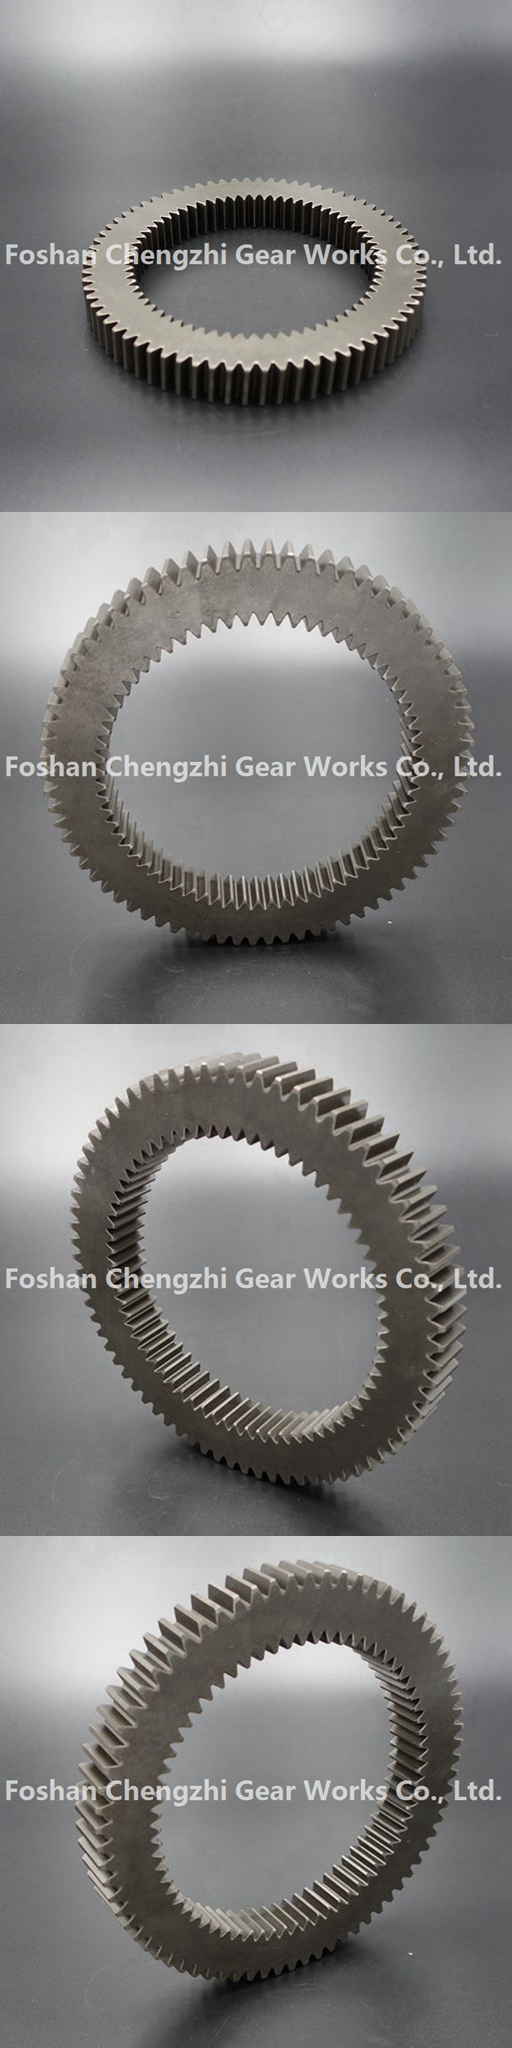 High Precision Customized Transmission Gear Ring Gear for Various Machinery